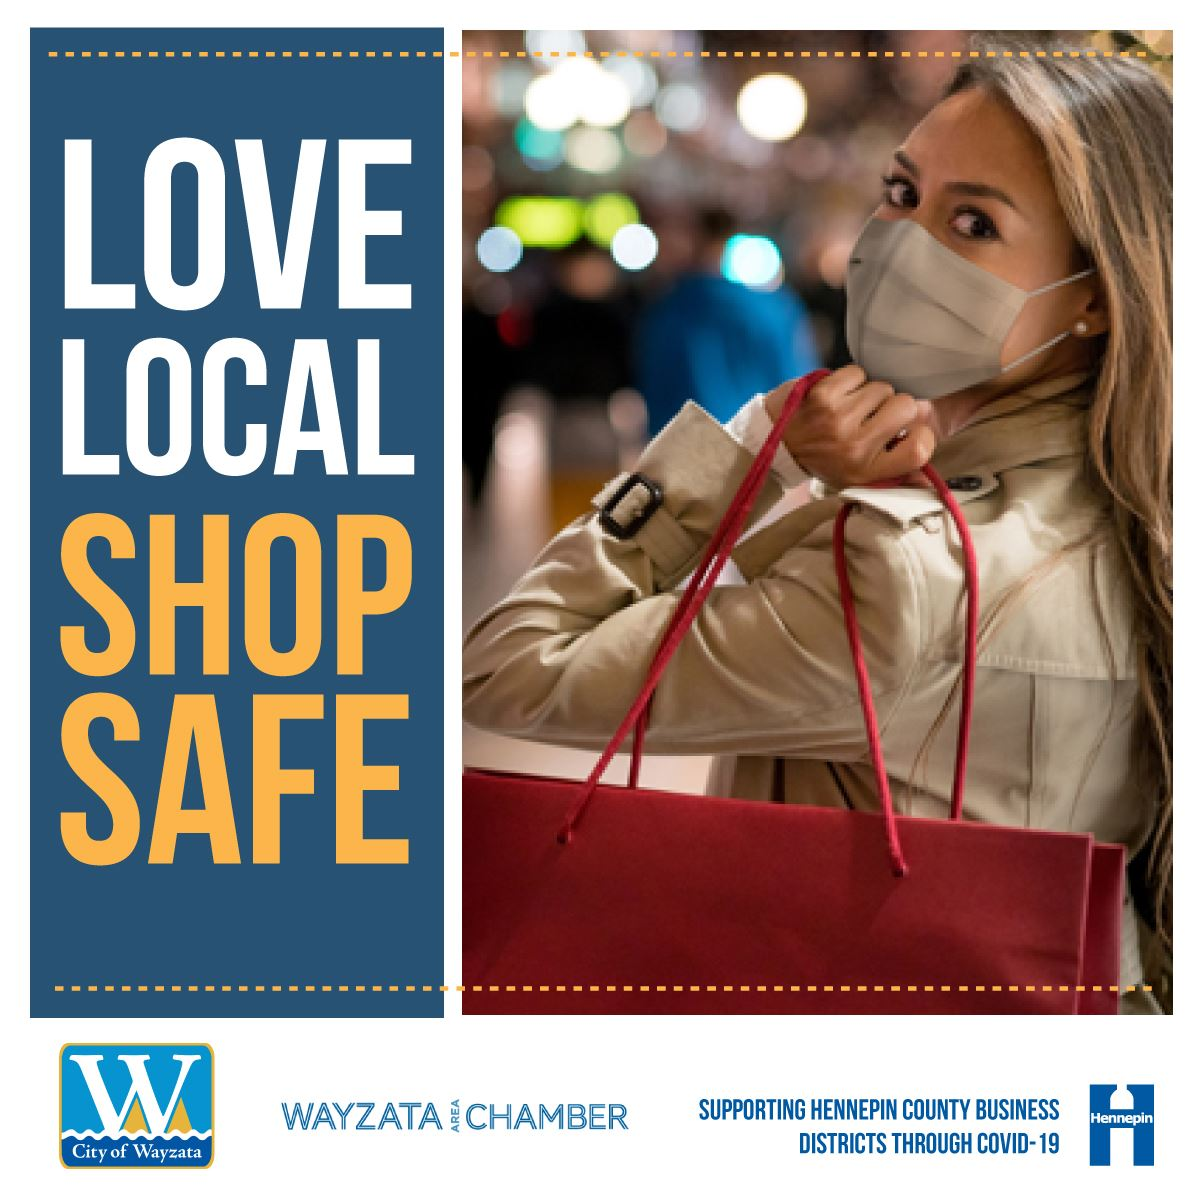 LoveLocal-Social-Posts-Wayzata1